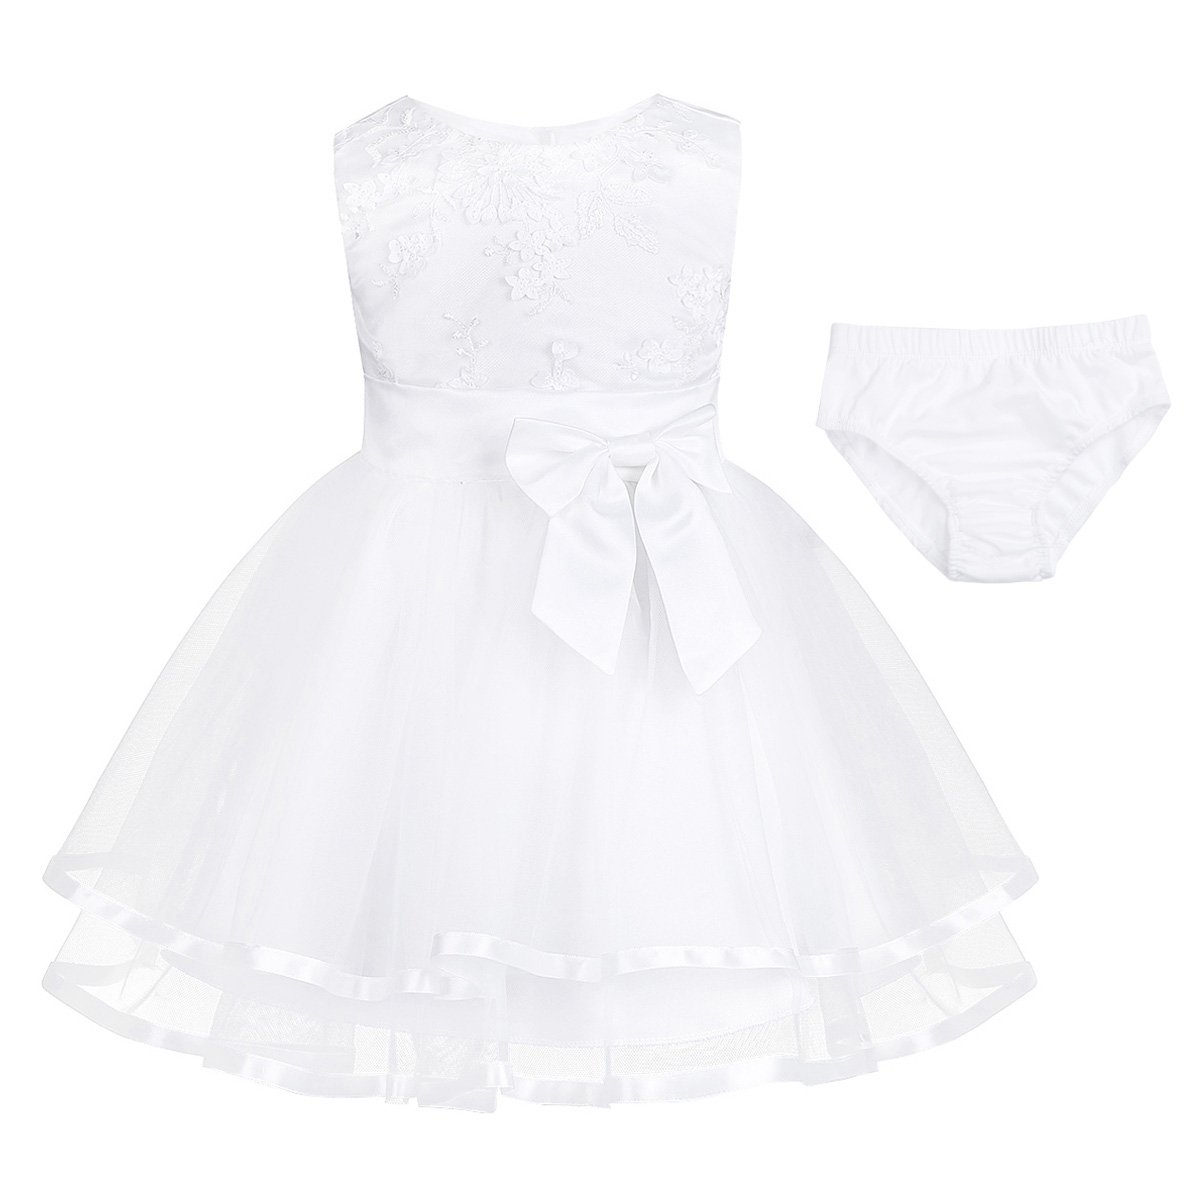 CHICTRY Infant Baby Girls Dress Embroidered Christening Baptism Gowns Flower Girl Dress with Bloomers